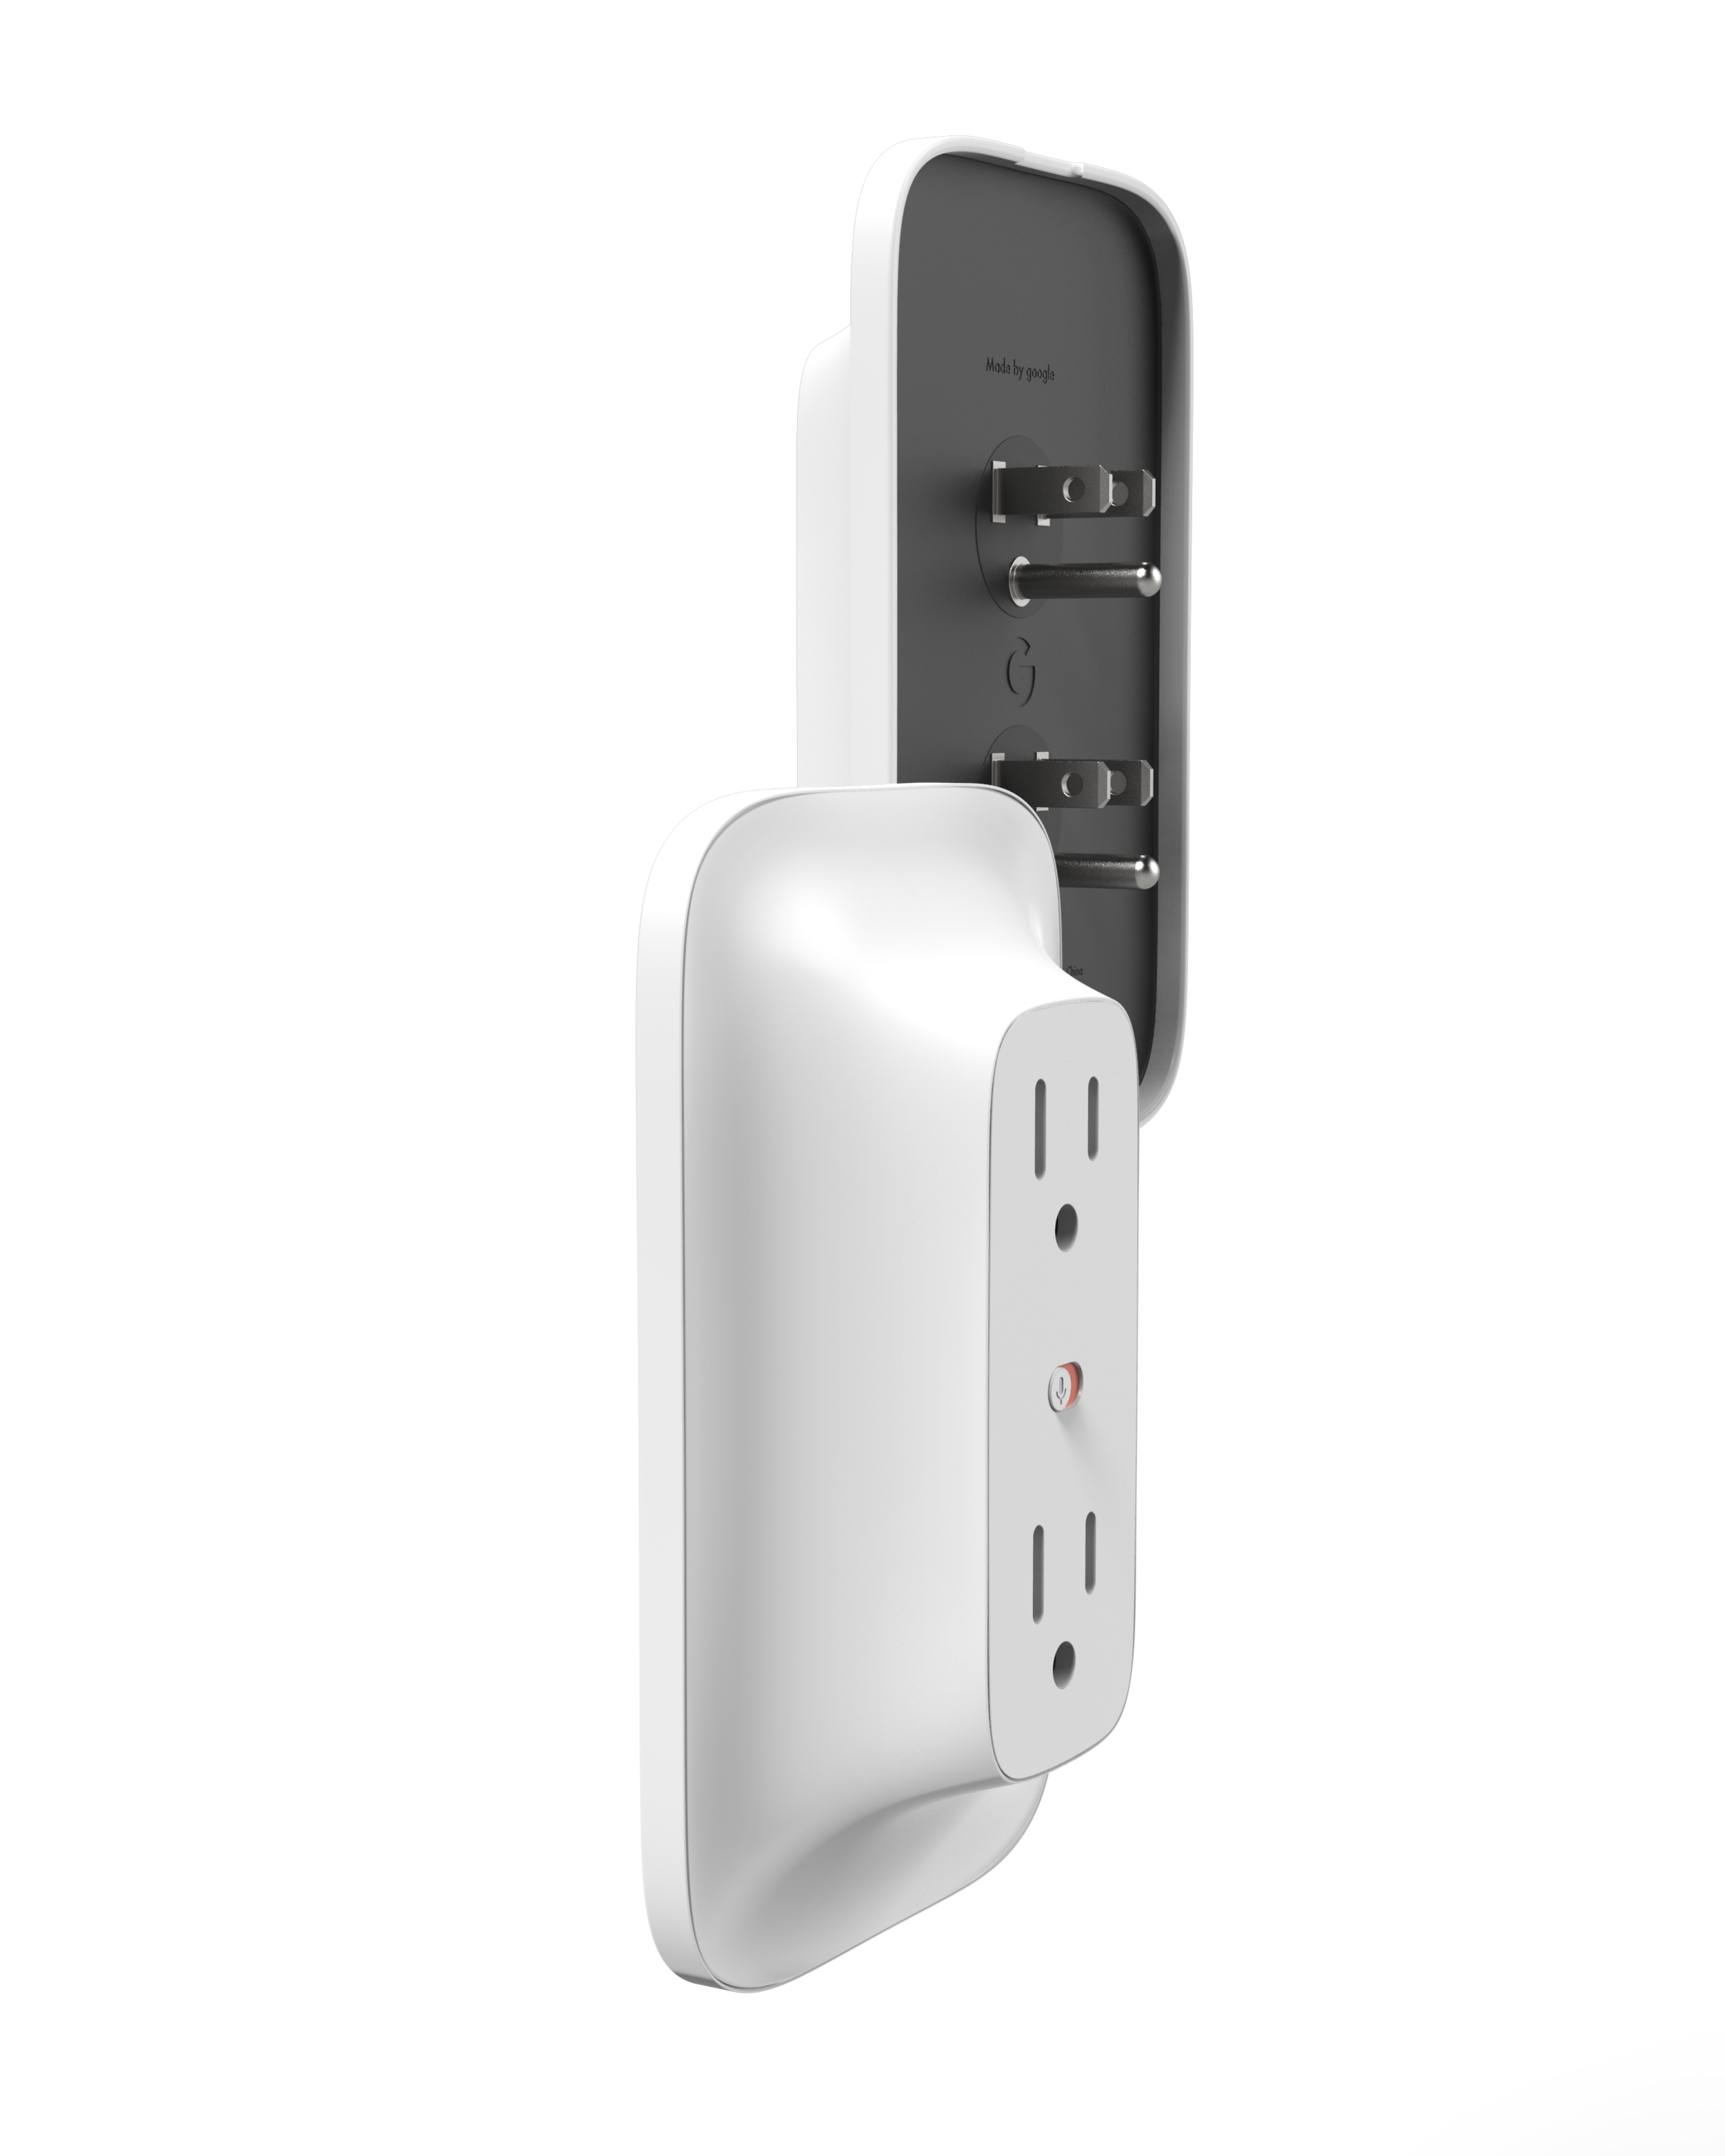 Wall socket COLOR.15.png